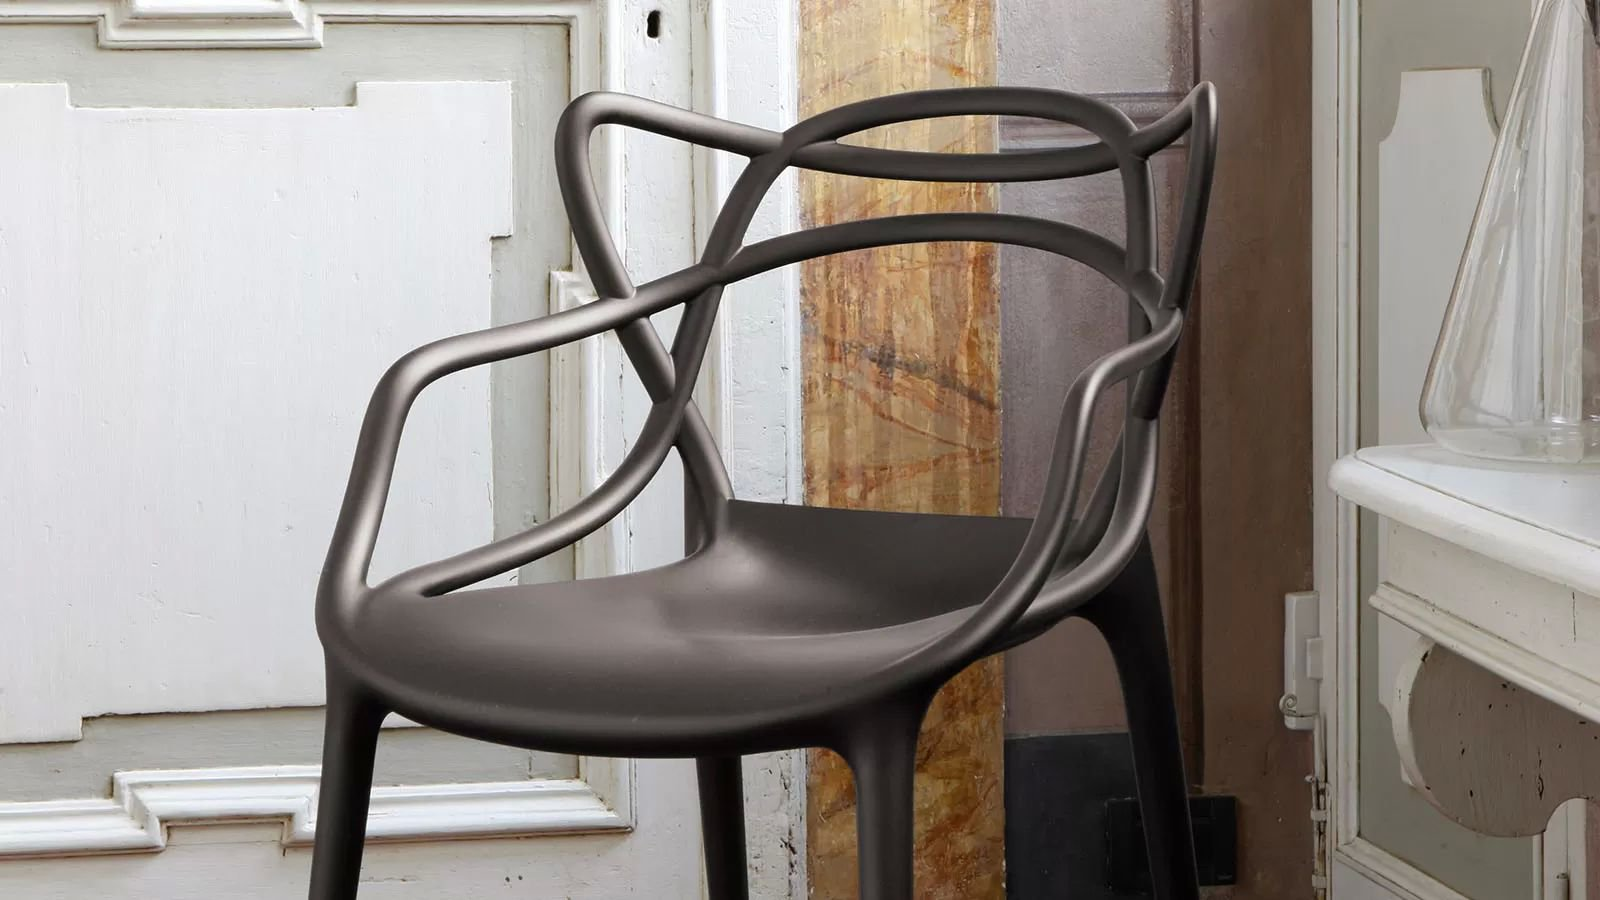 Kartell Masters Plastic Chair Dining Room Furniture